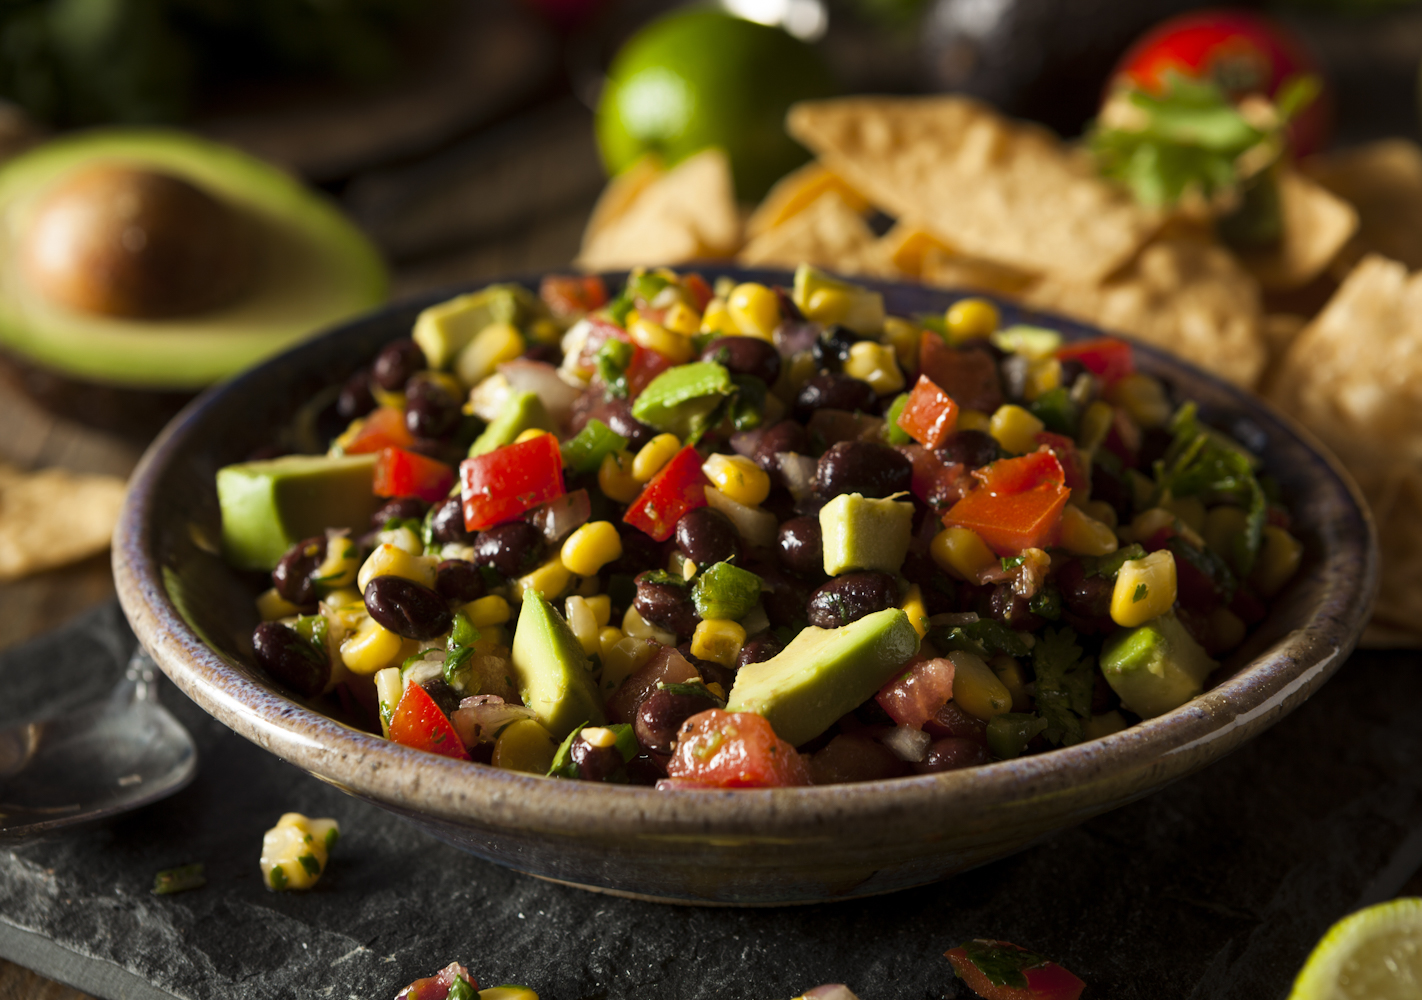 A surprisingly healthy, vegetarian option that's filling and delicious!